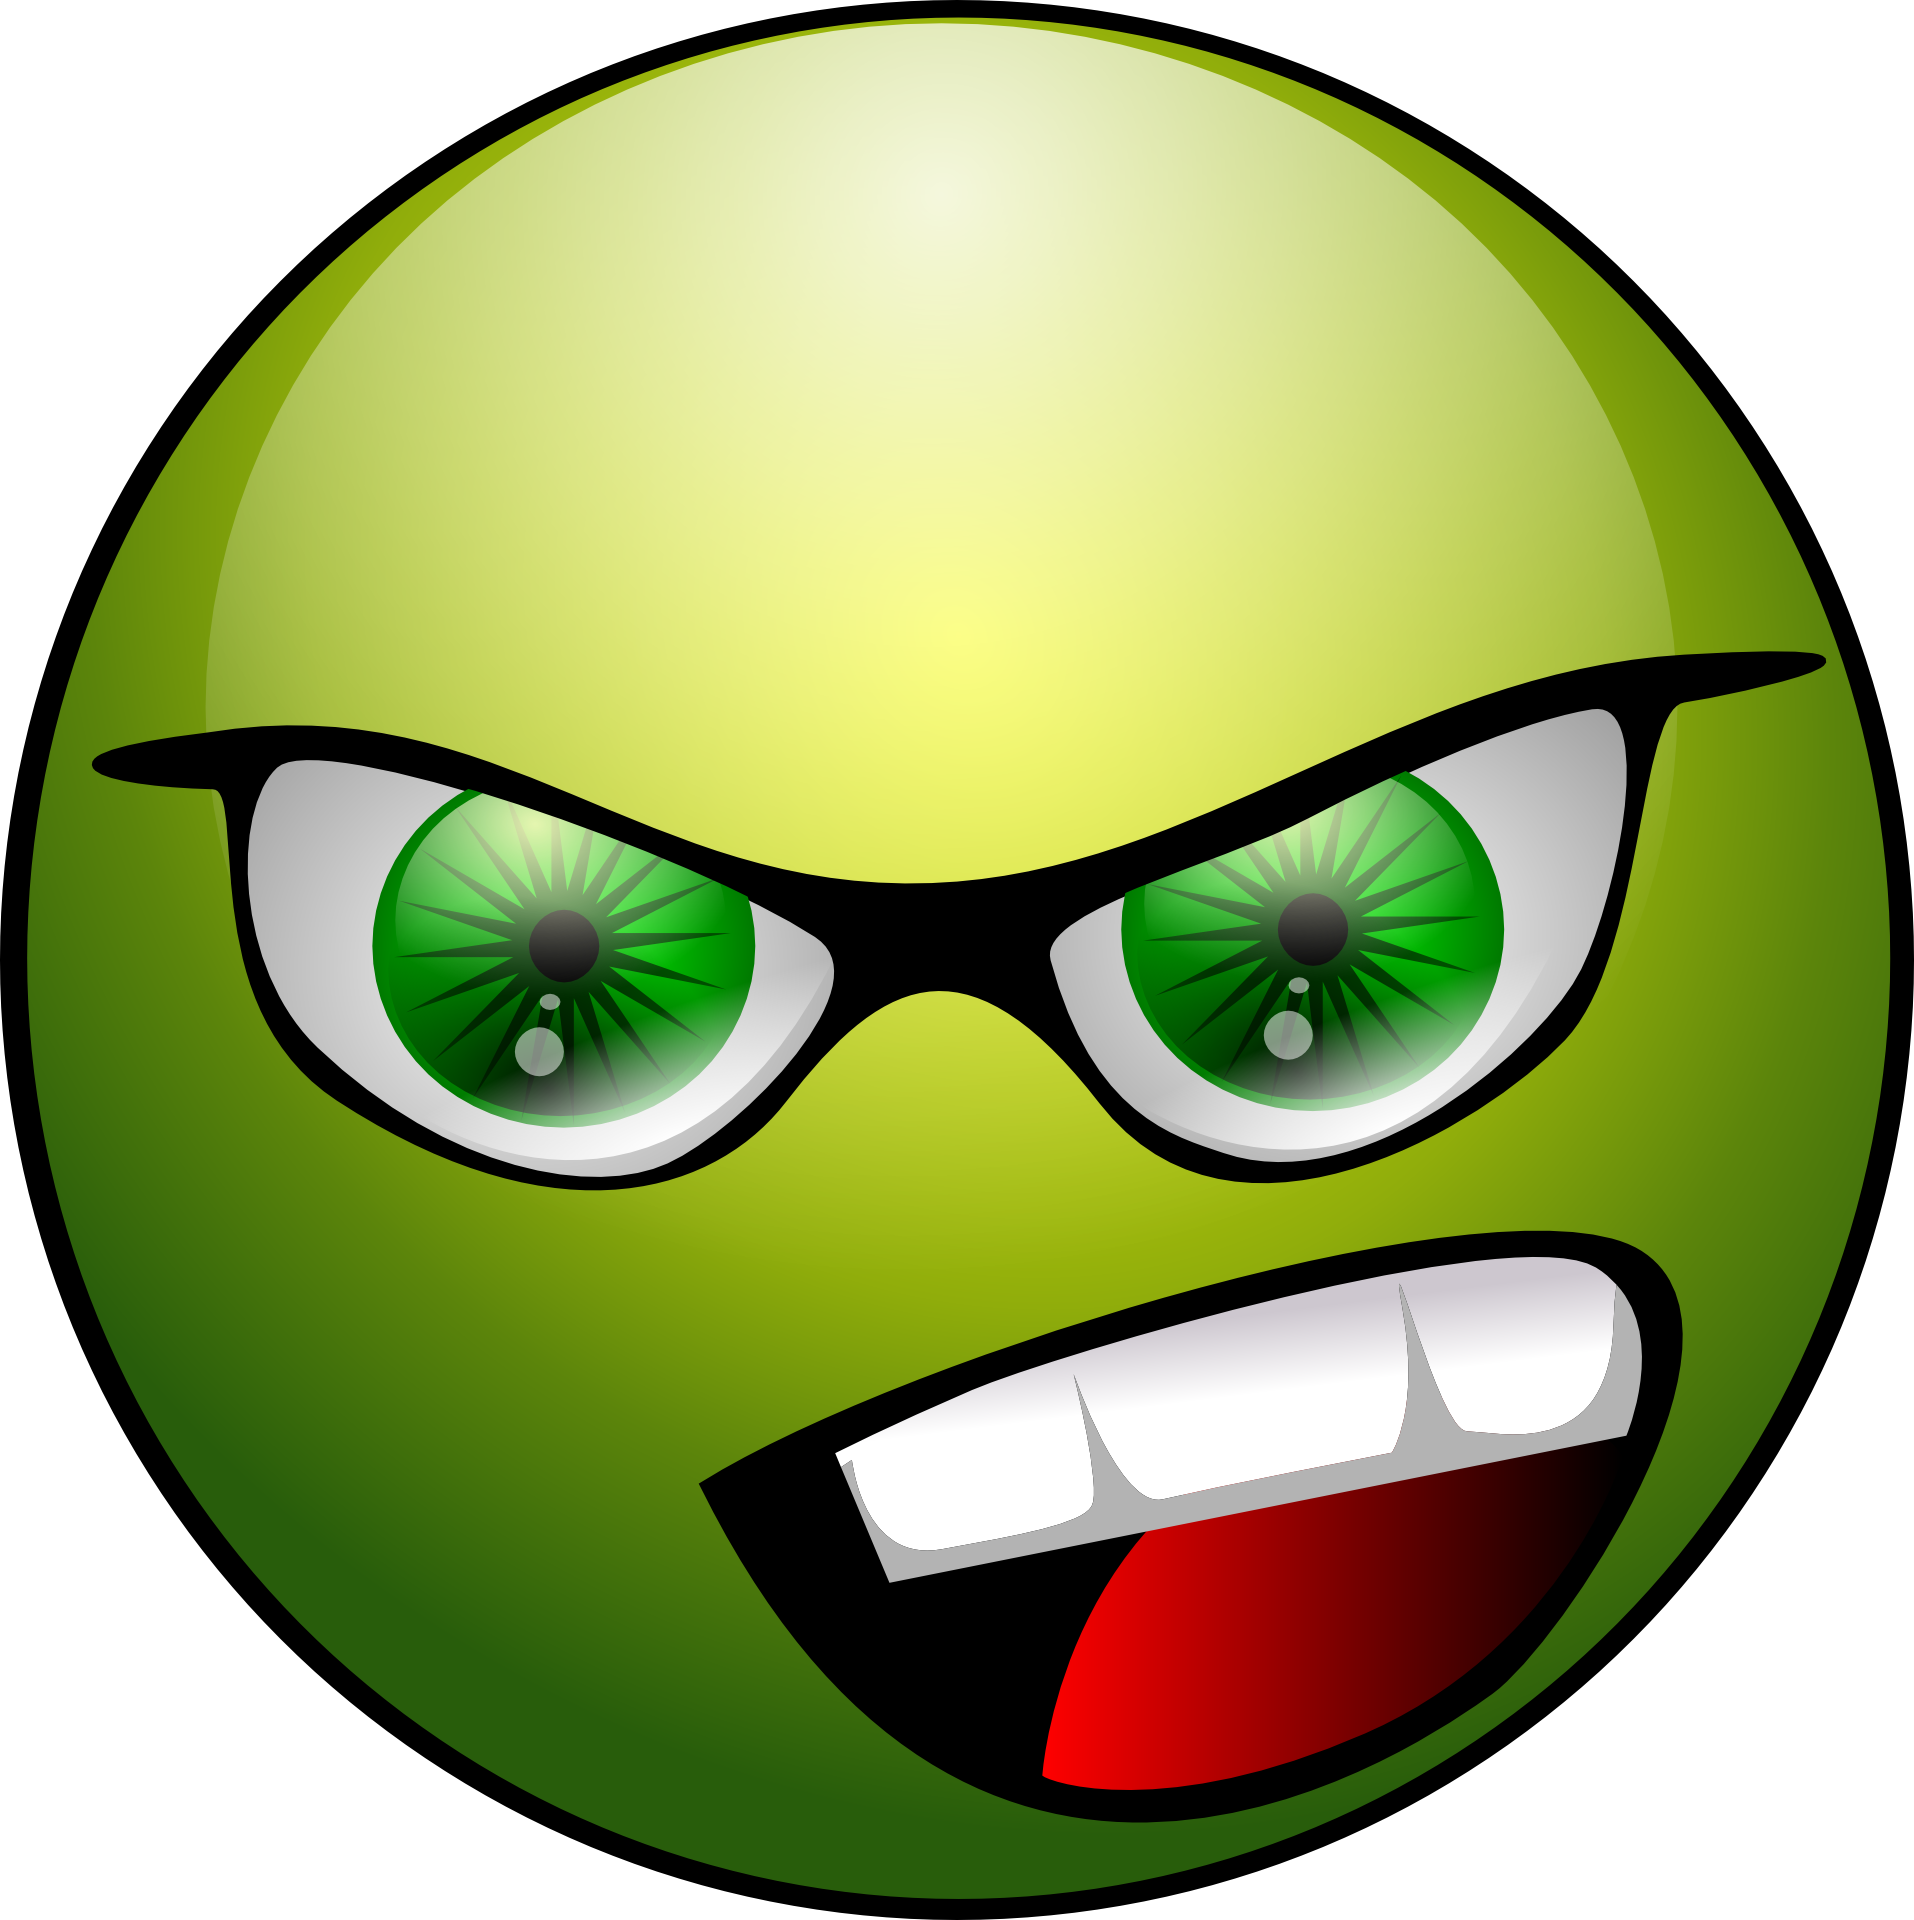 https://pixabay.com/en/angry-face-emoticon-animations-33059/